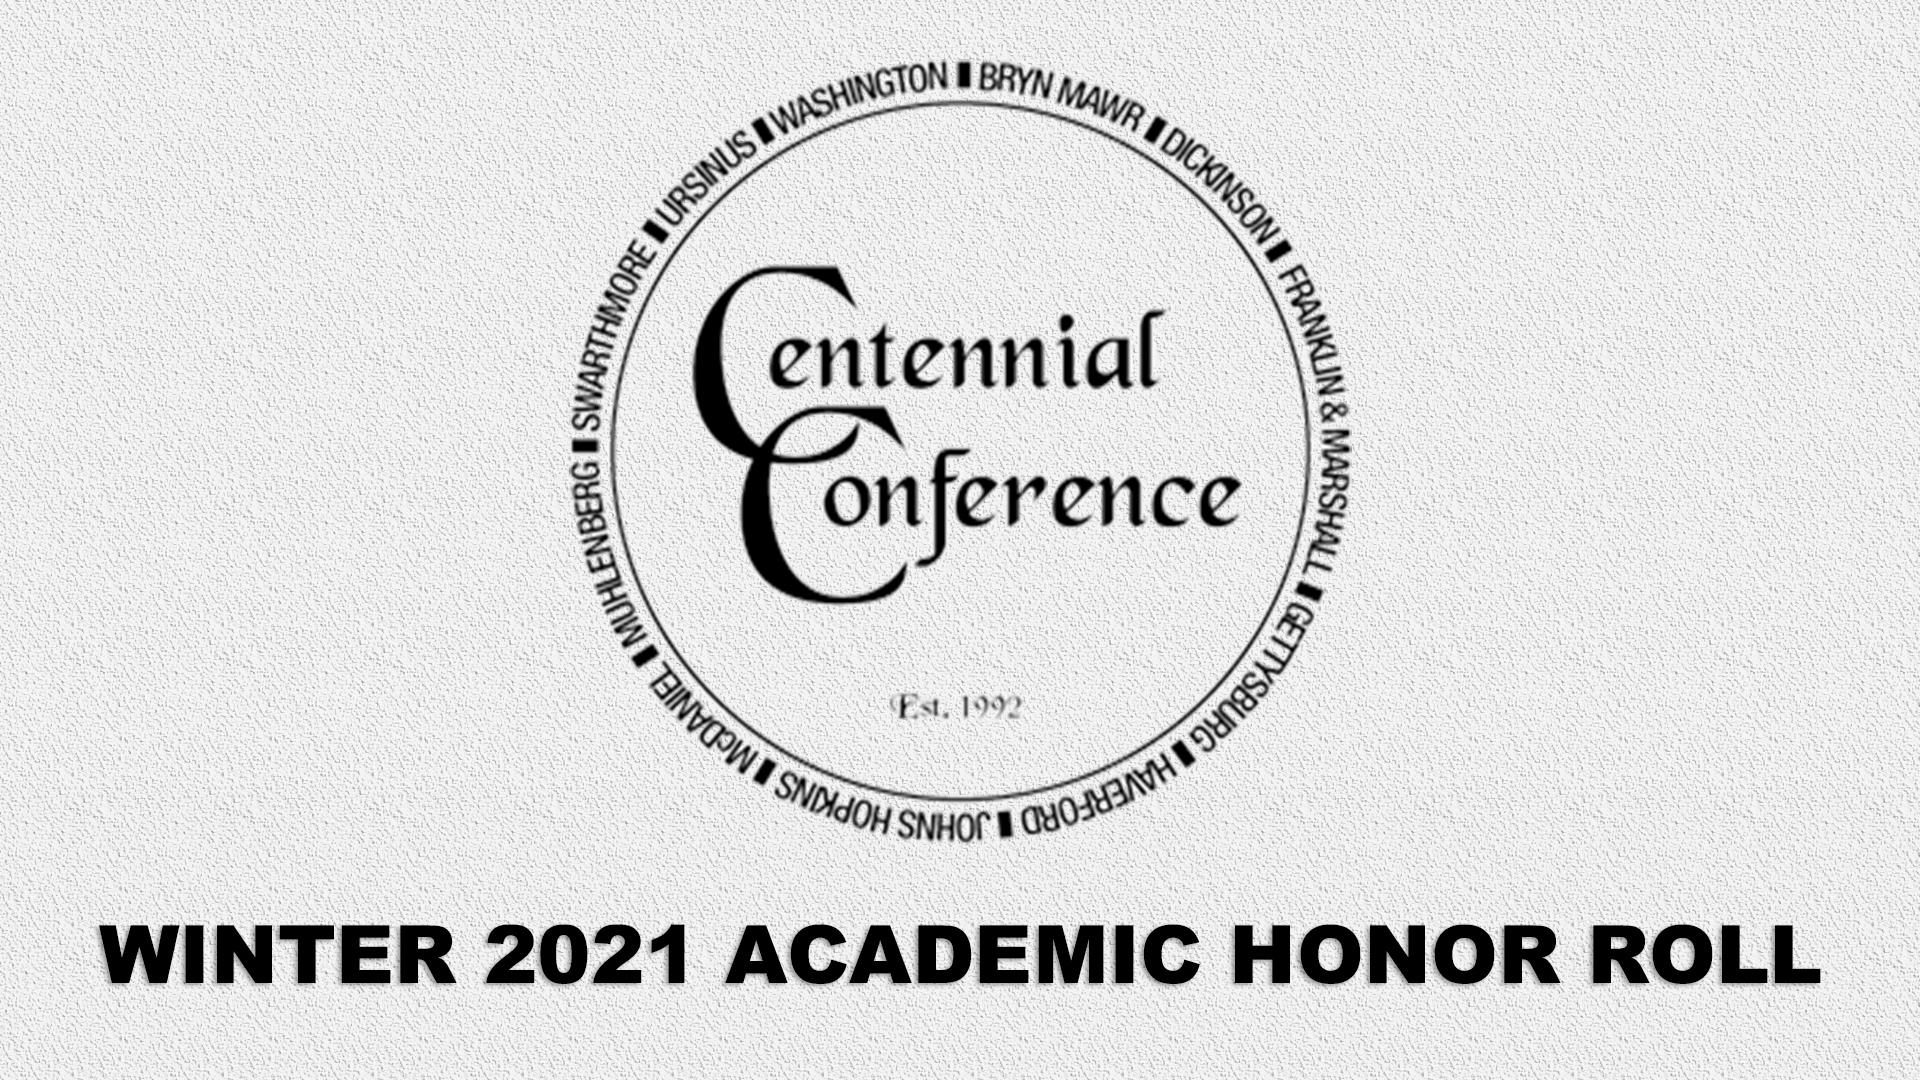 Centennial Conference Announces 2021 Winter Academic Honor Roll